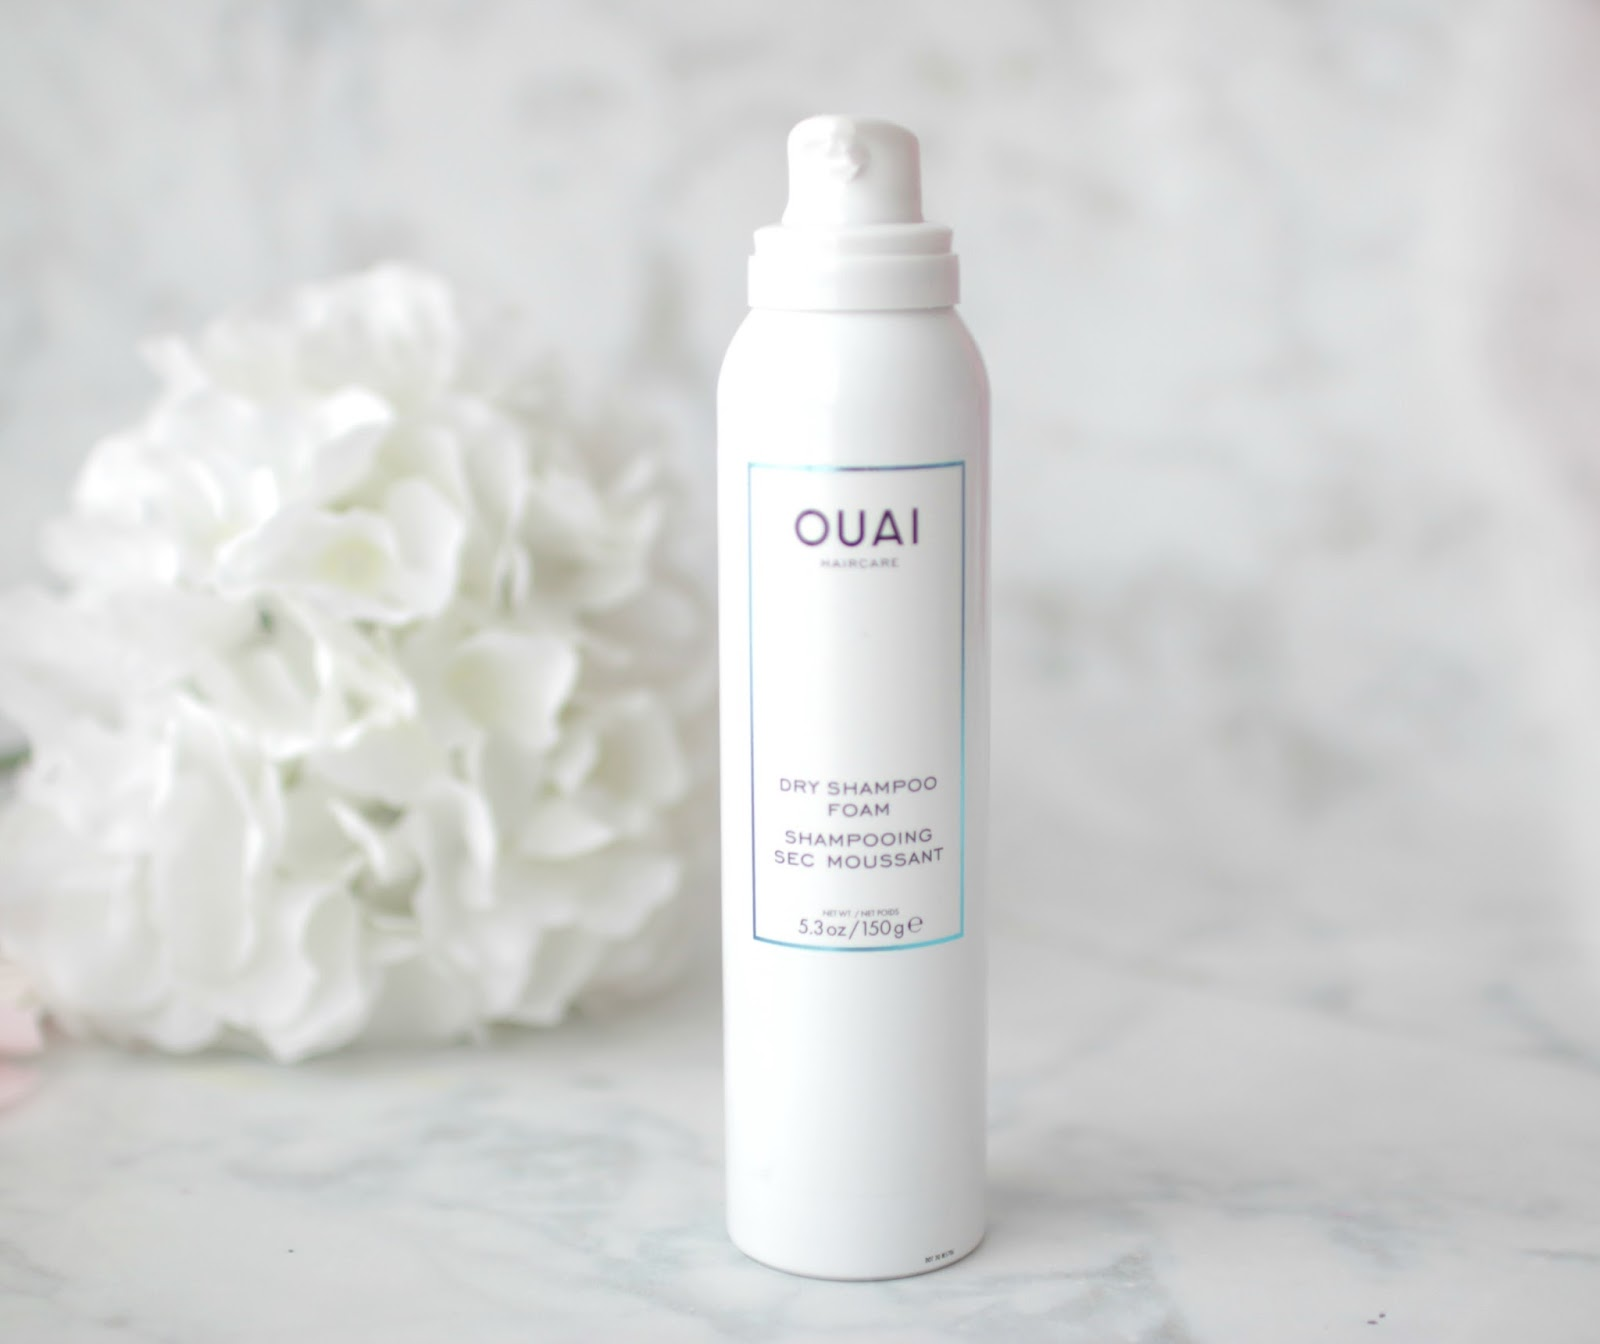 Elle Sees Beauty Blogger In Atlanta Ouai Dry Shampoo Foam Review Jill Cleansing